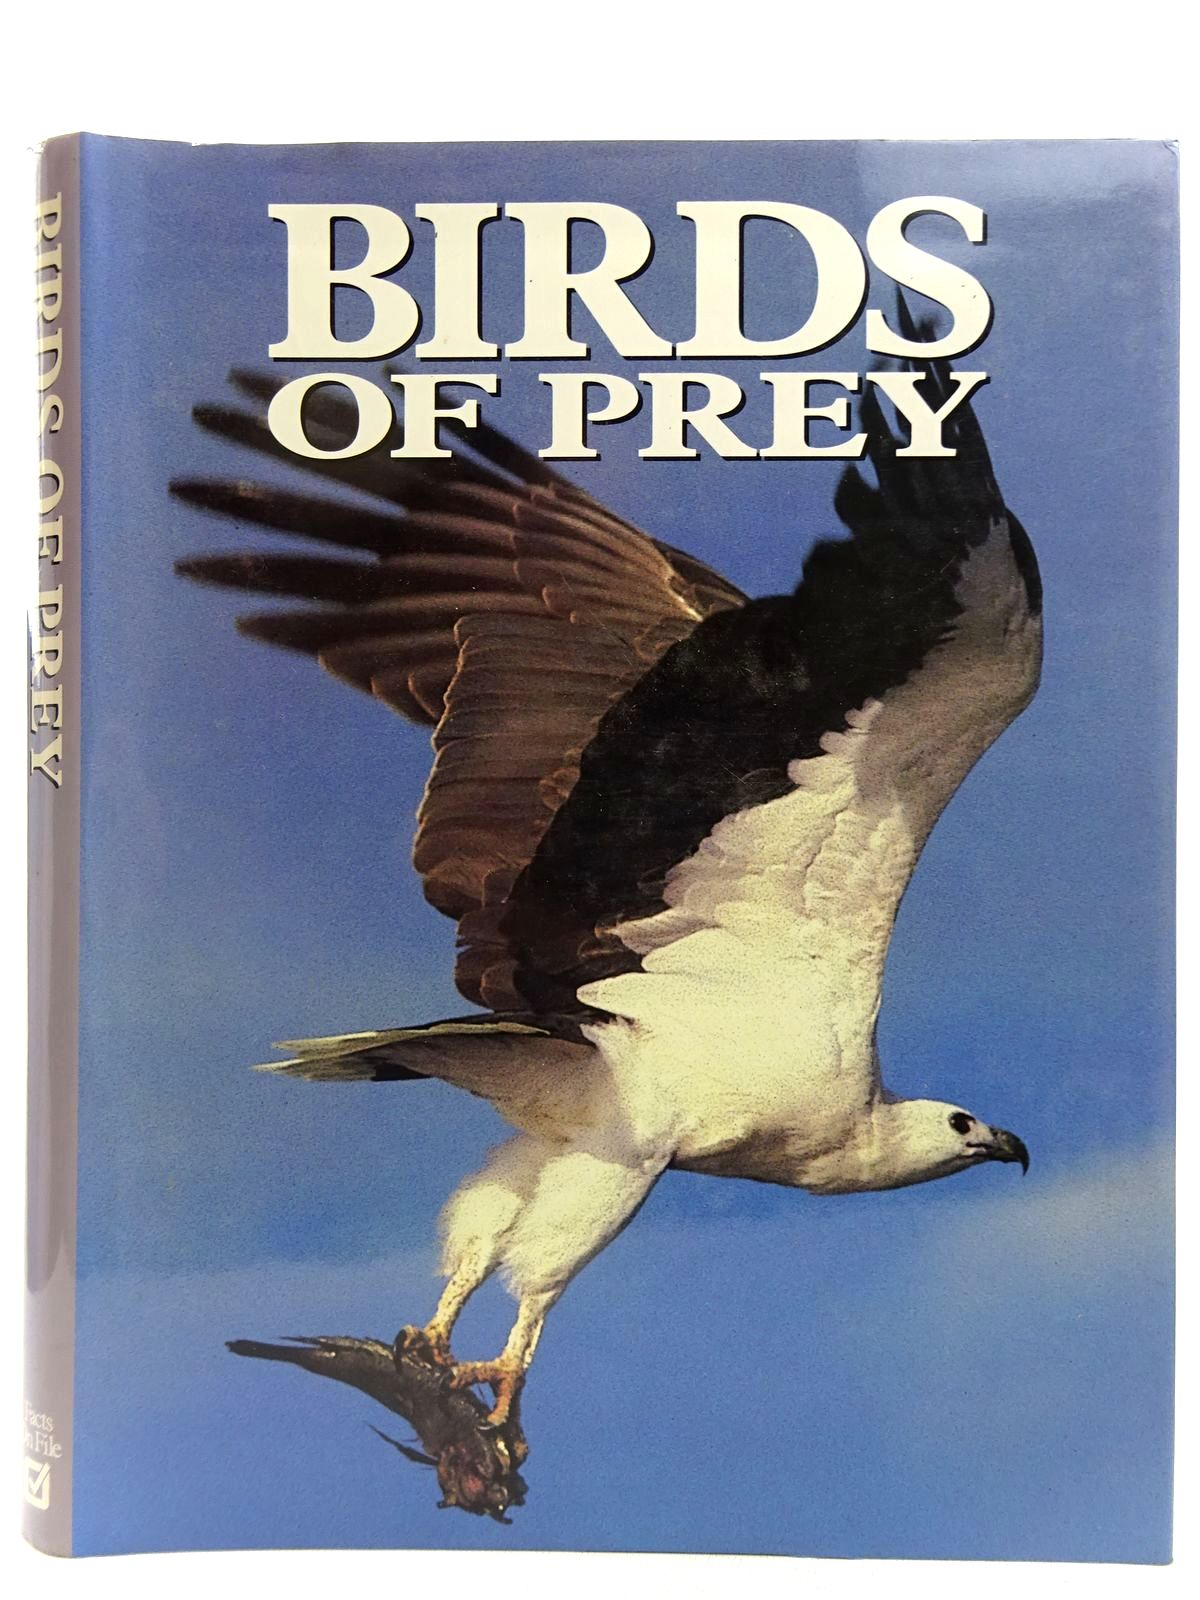 Photo of BIRDS OF PREY written by Newton, Ian Olsen, Penny illustrated by Pyrzakowski, Tony published by Facts On File (STOCK CODE: 2127745)  for sale by Stella & Rose's Books